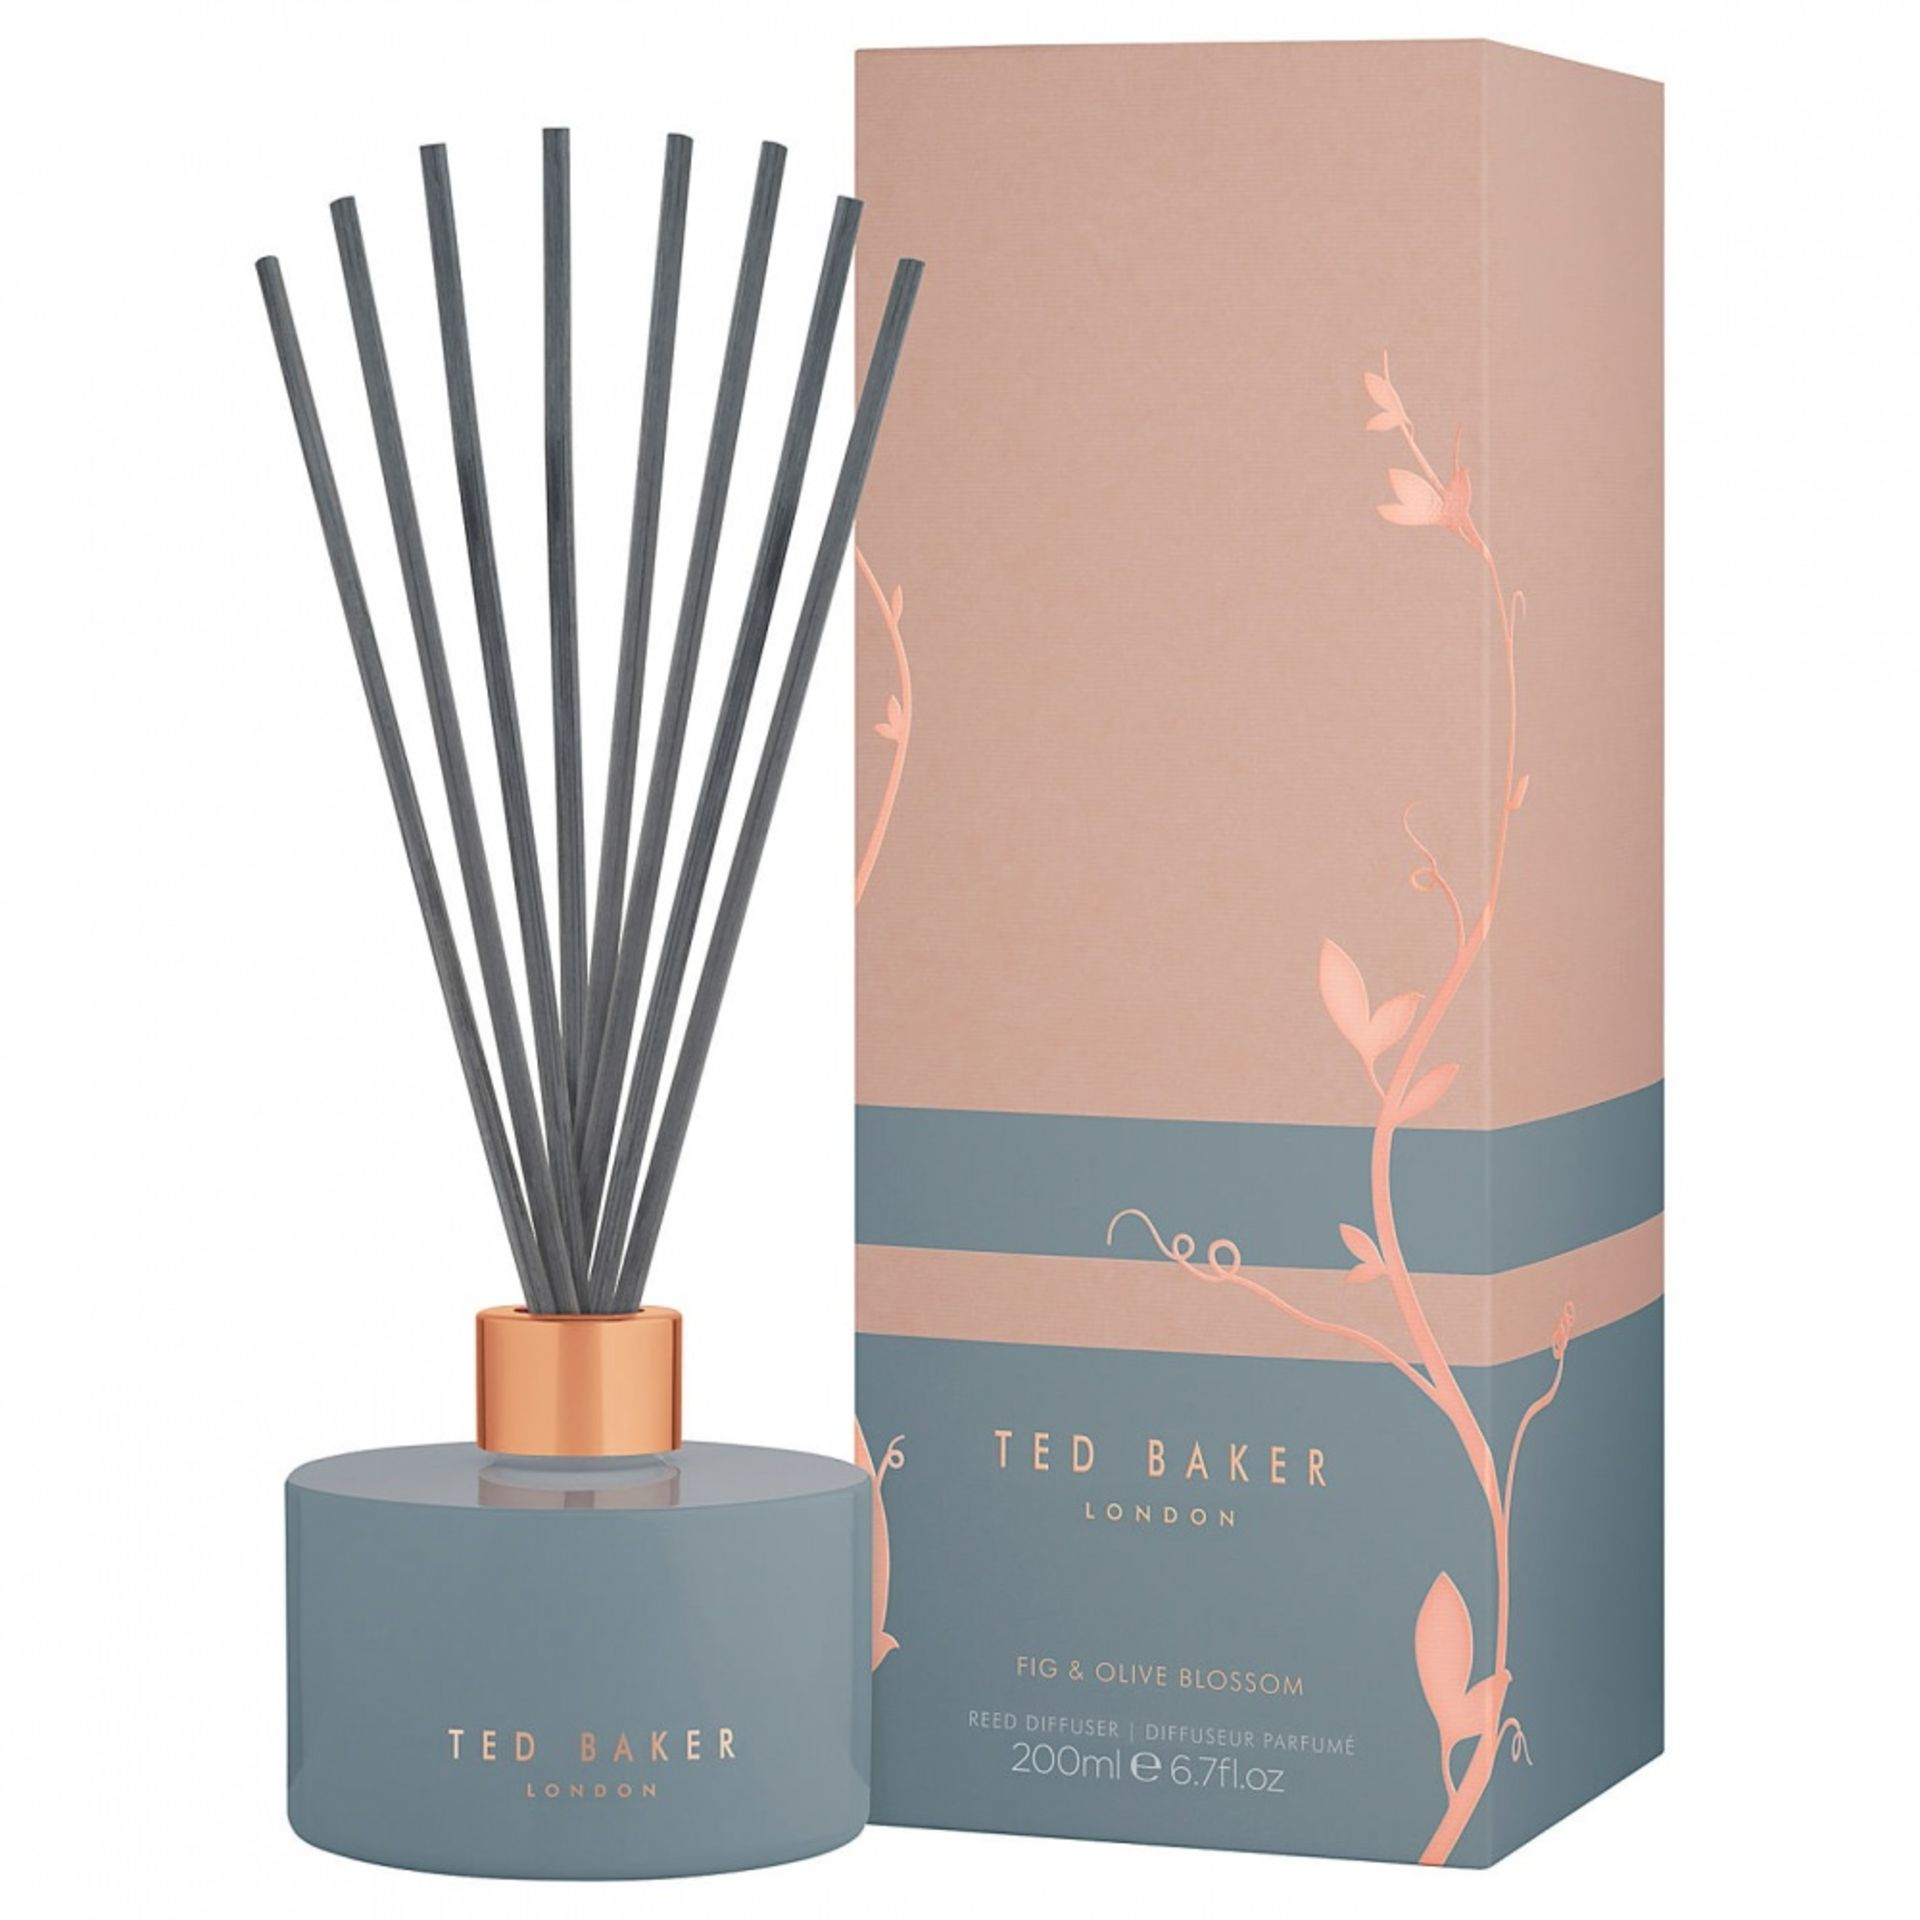 Lot 50099 - V Brand New Ted Baker Fig & Olive Blossom Reed Diffuser - ISP £34 (John Lewis)